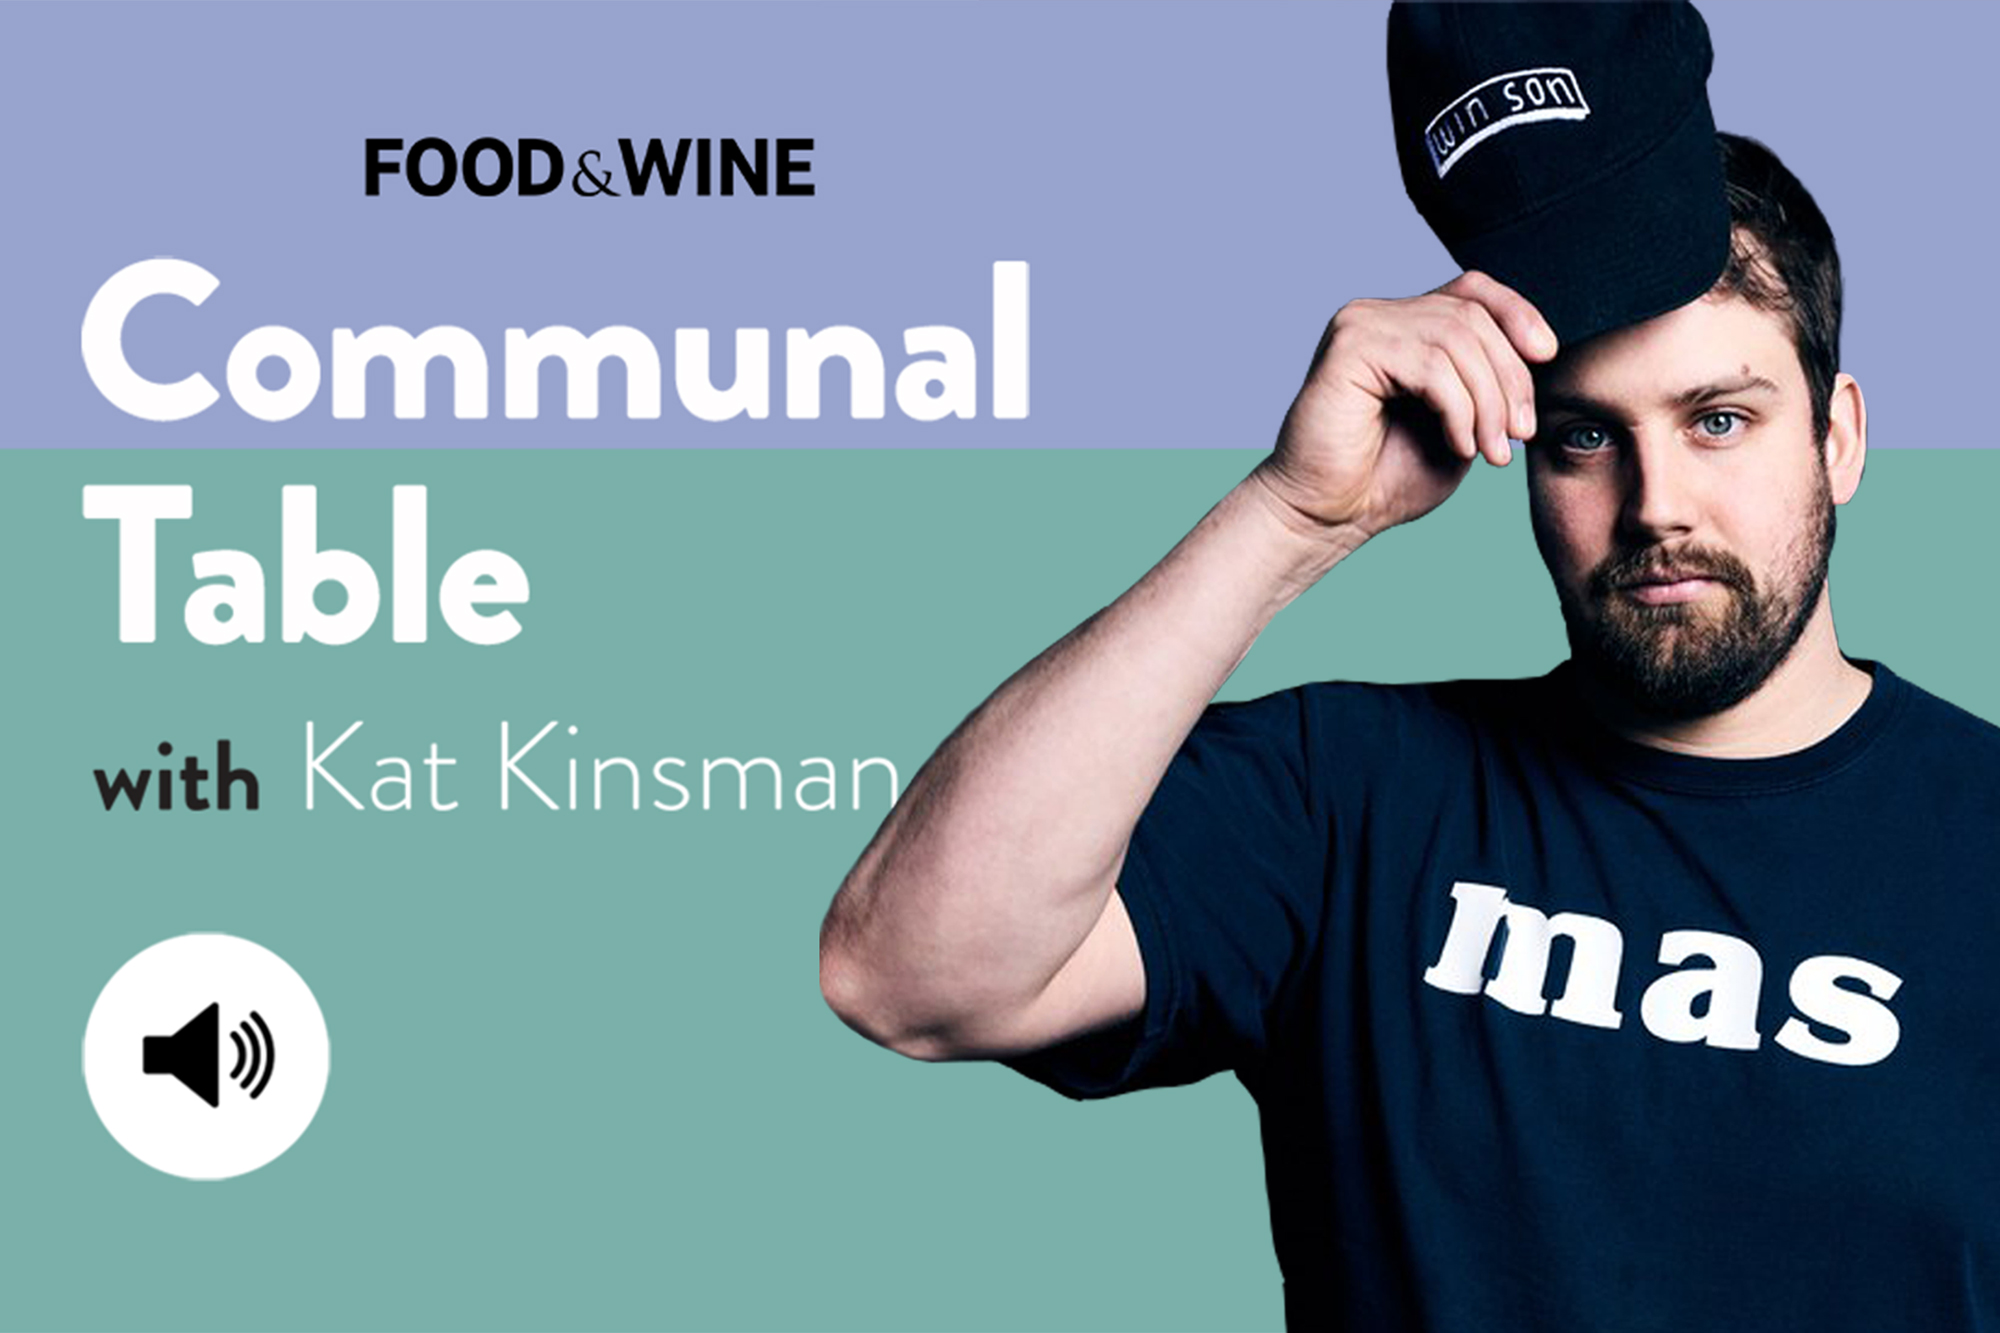 Communal Table with Kat Kinsman featuring Trigg Brown